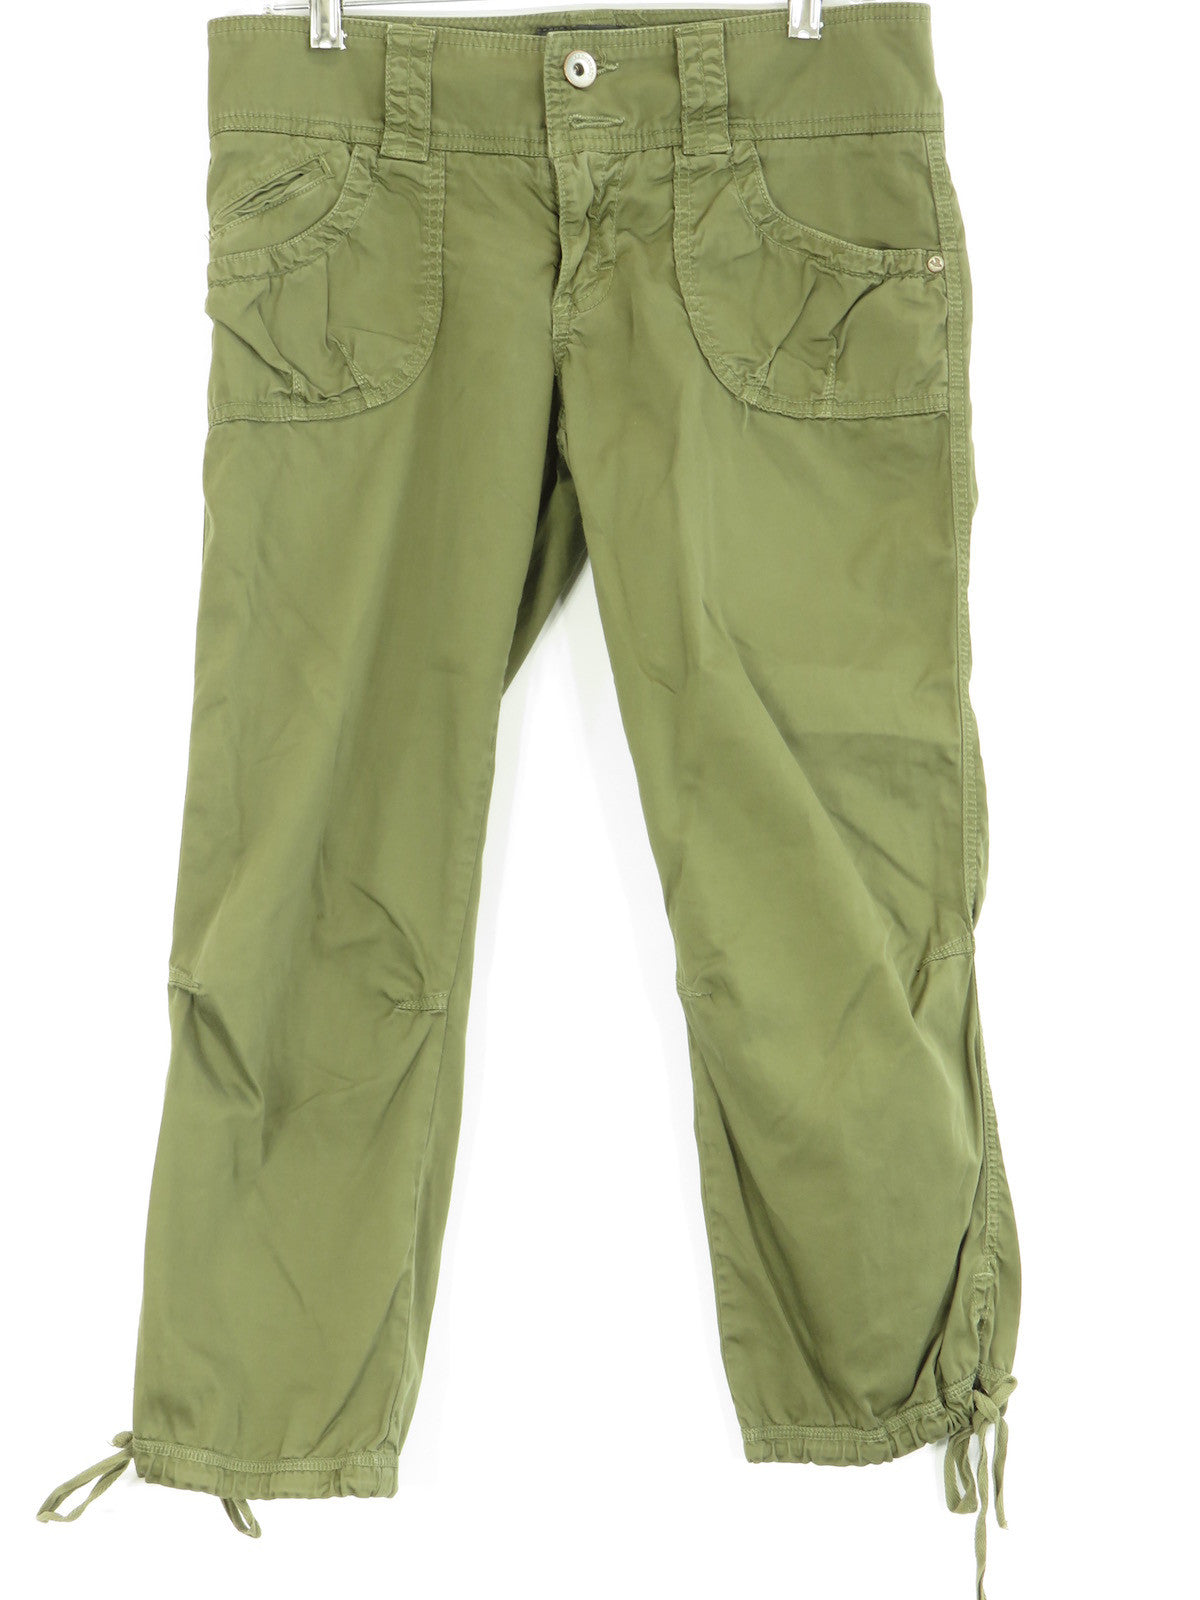 5fb65274b9c96 SANCTUARY CLOTHING Women Olive Green Cargo Cropped Pants Size 2